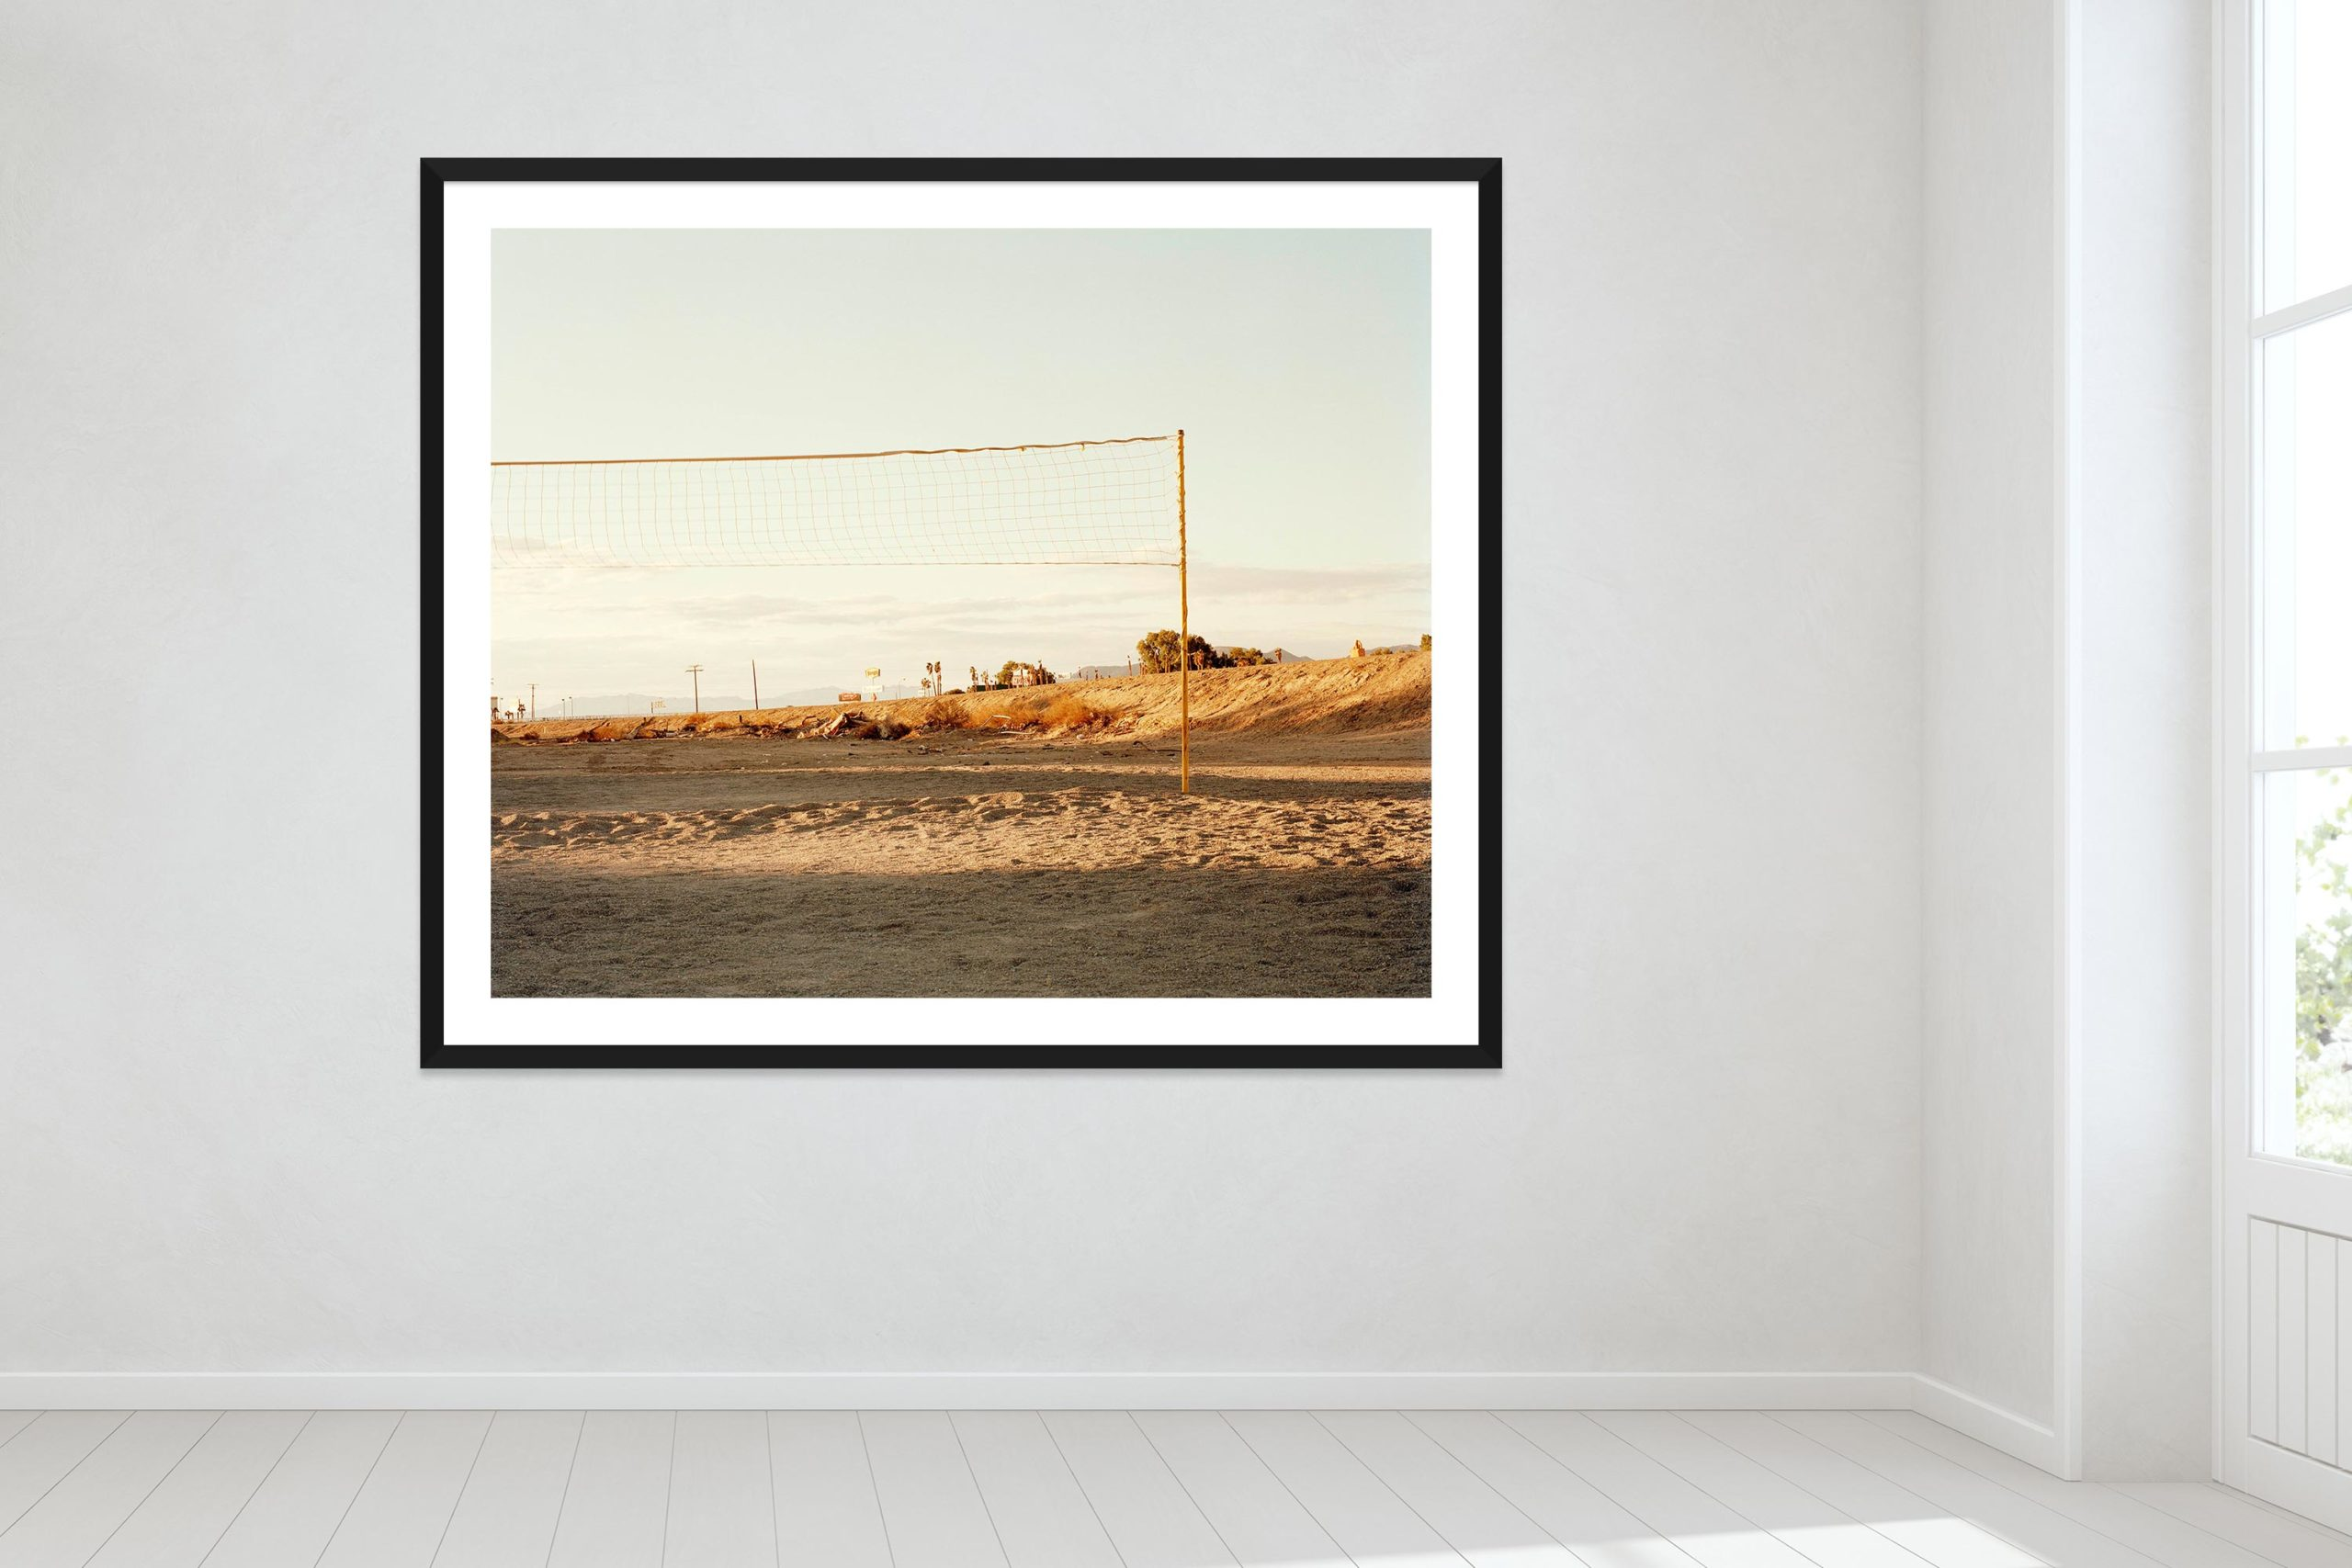 I Knew These People - Black Frame - Oh Mojave Collection - Fine Art Photography by Toby Dixon